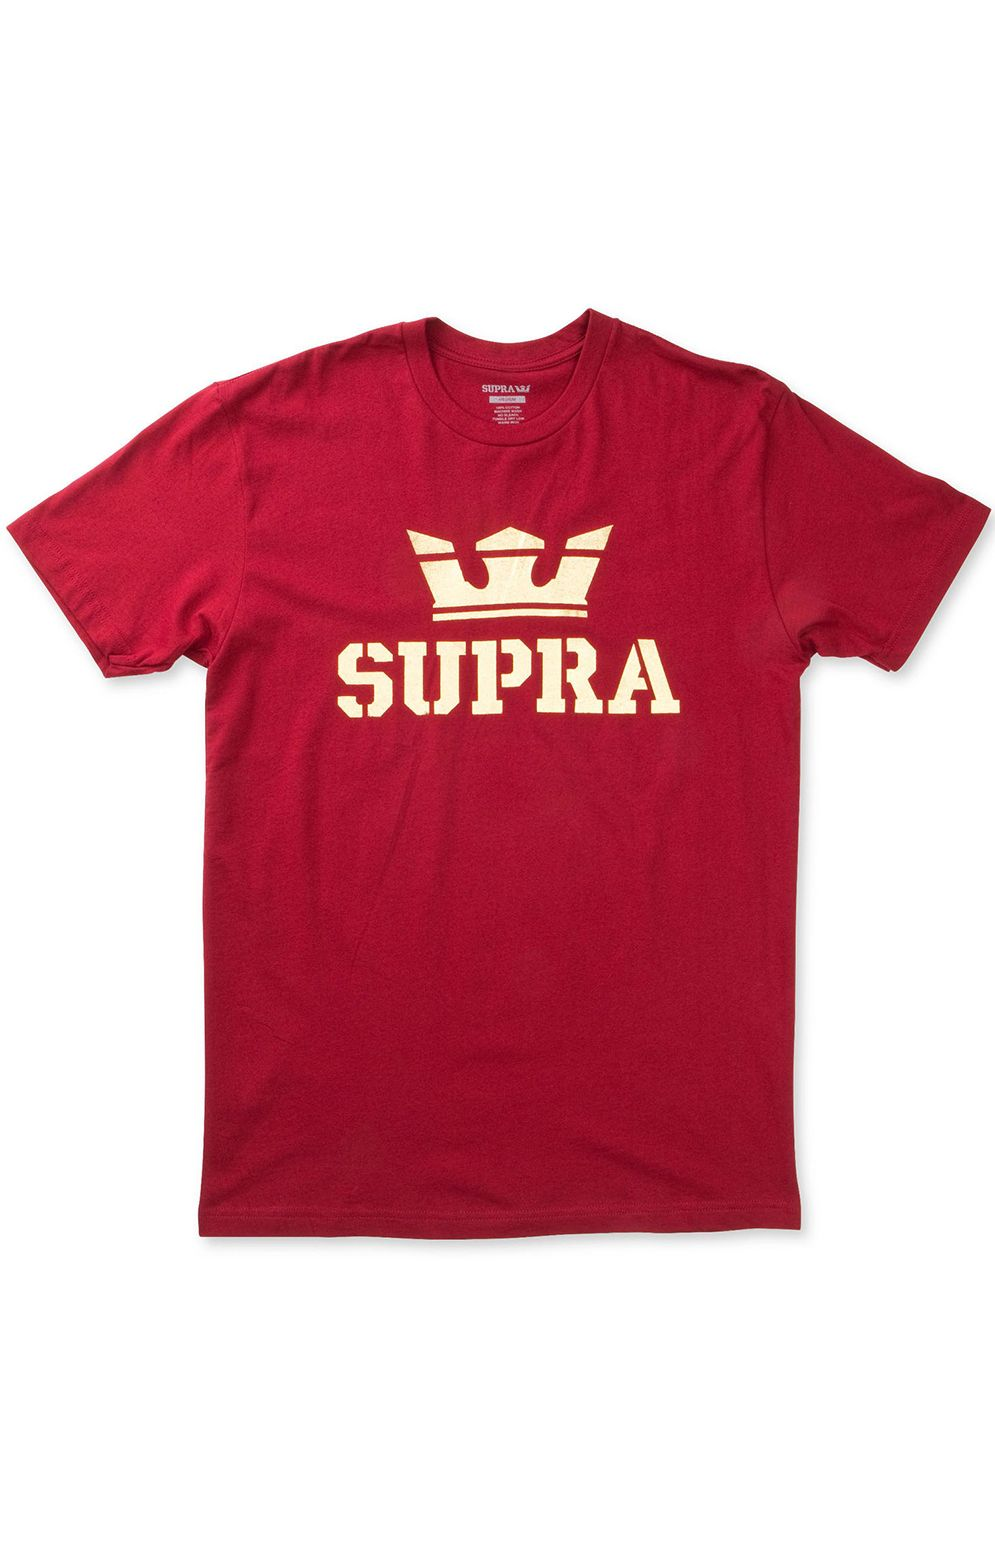 T-Shirt Supra ABOVE REGULAR Rose/Gold